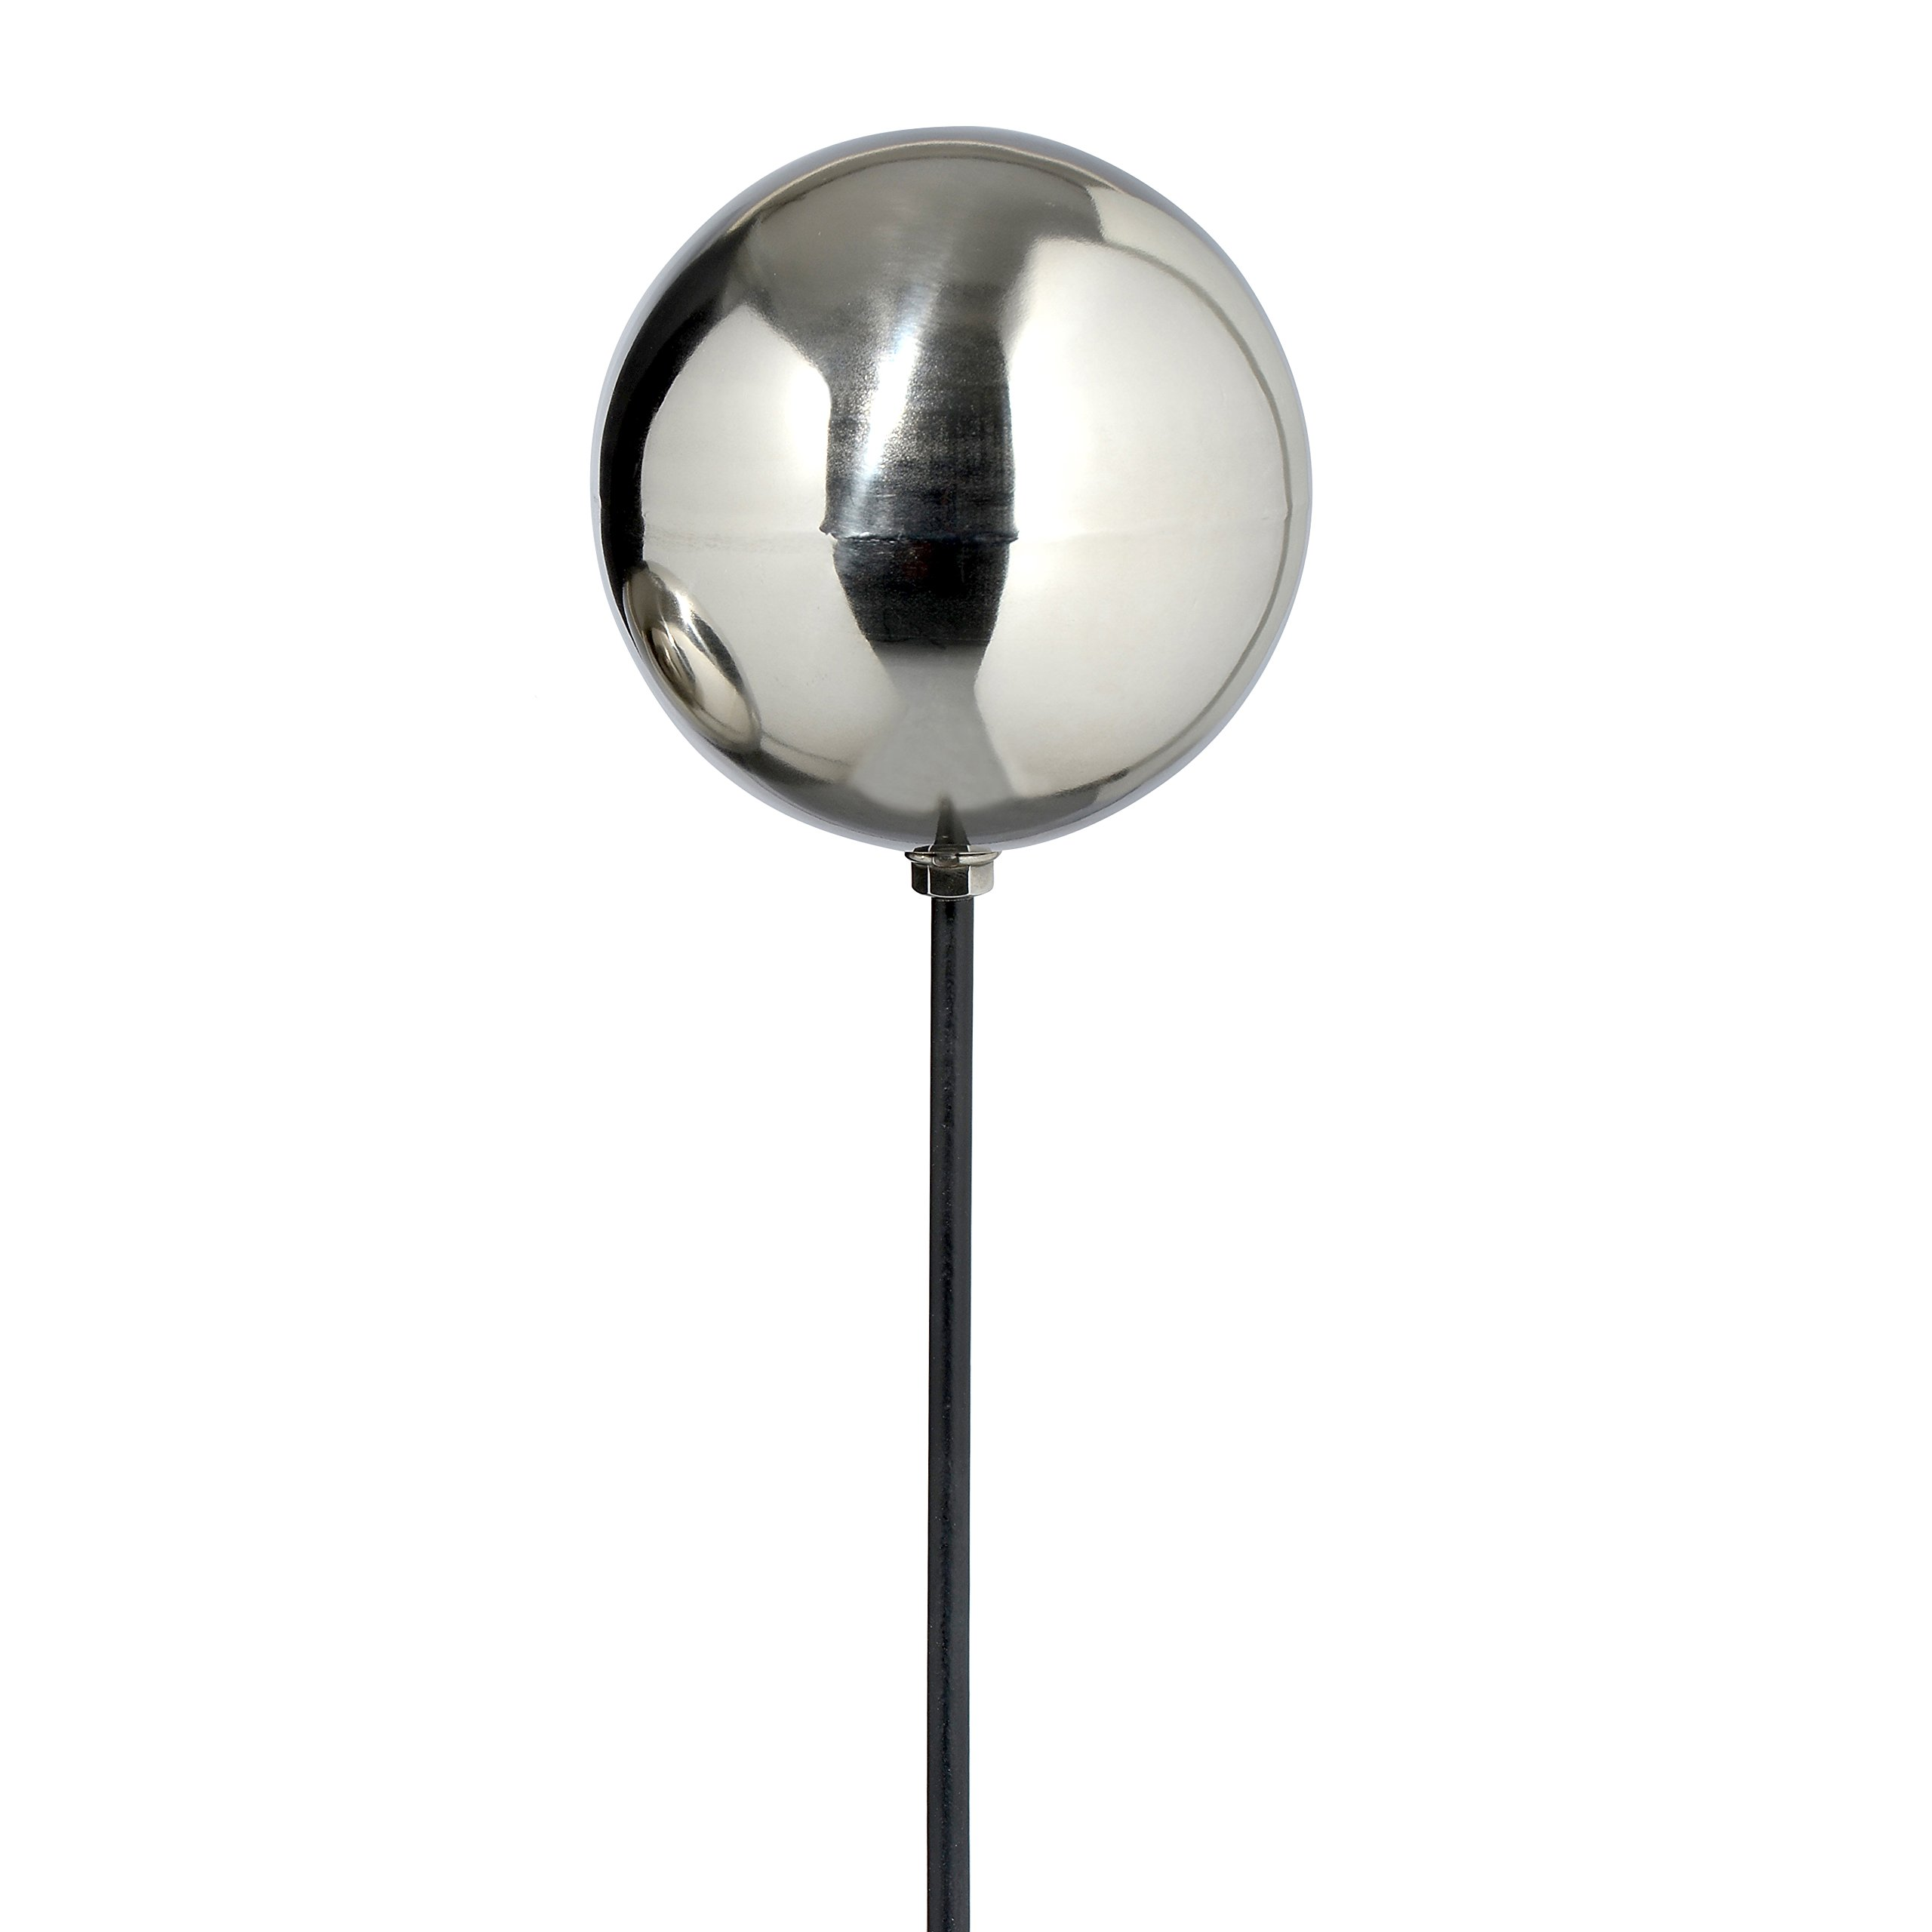 Whole House Worlds The Crosby Street Chic Gazing Ball Garden Stake, 3 1/2 Inch Stainless Steel Mirror Globe, Just Over 3 Ft at 39 3/8 Inches High, Stake Mounted, By